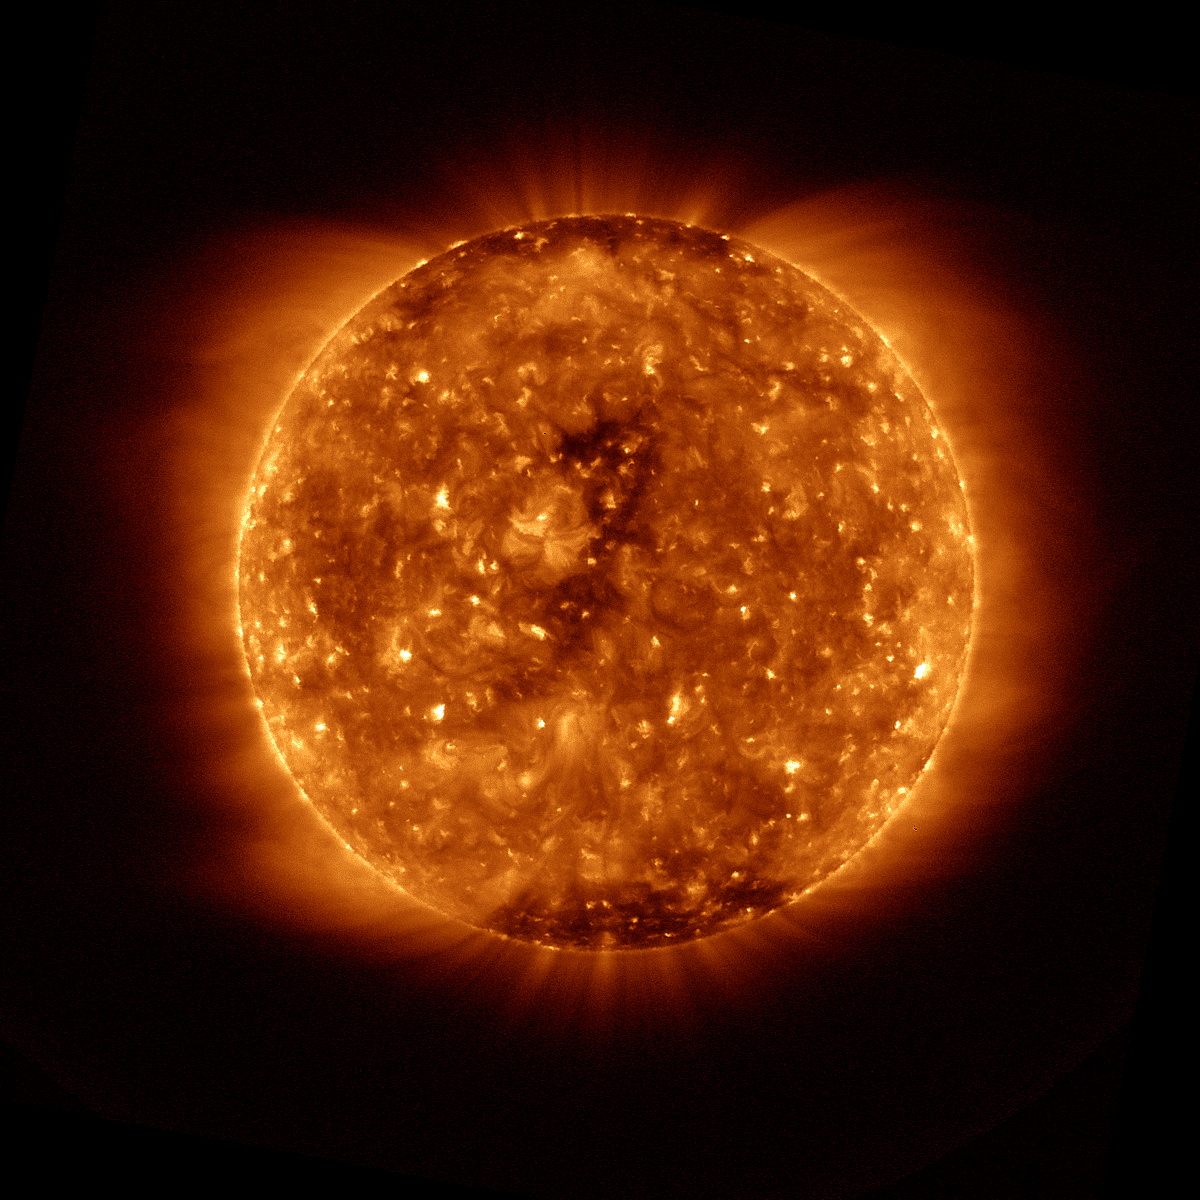 Solar prediction scientists announce Solar Cycle 25. Learn more. #SolarCycle25